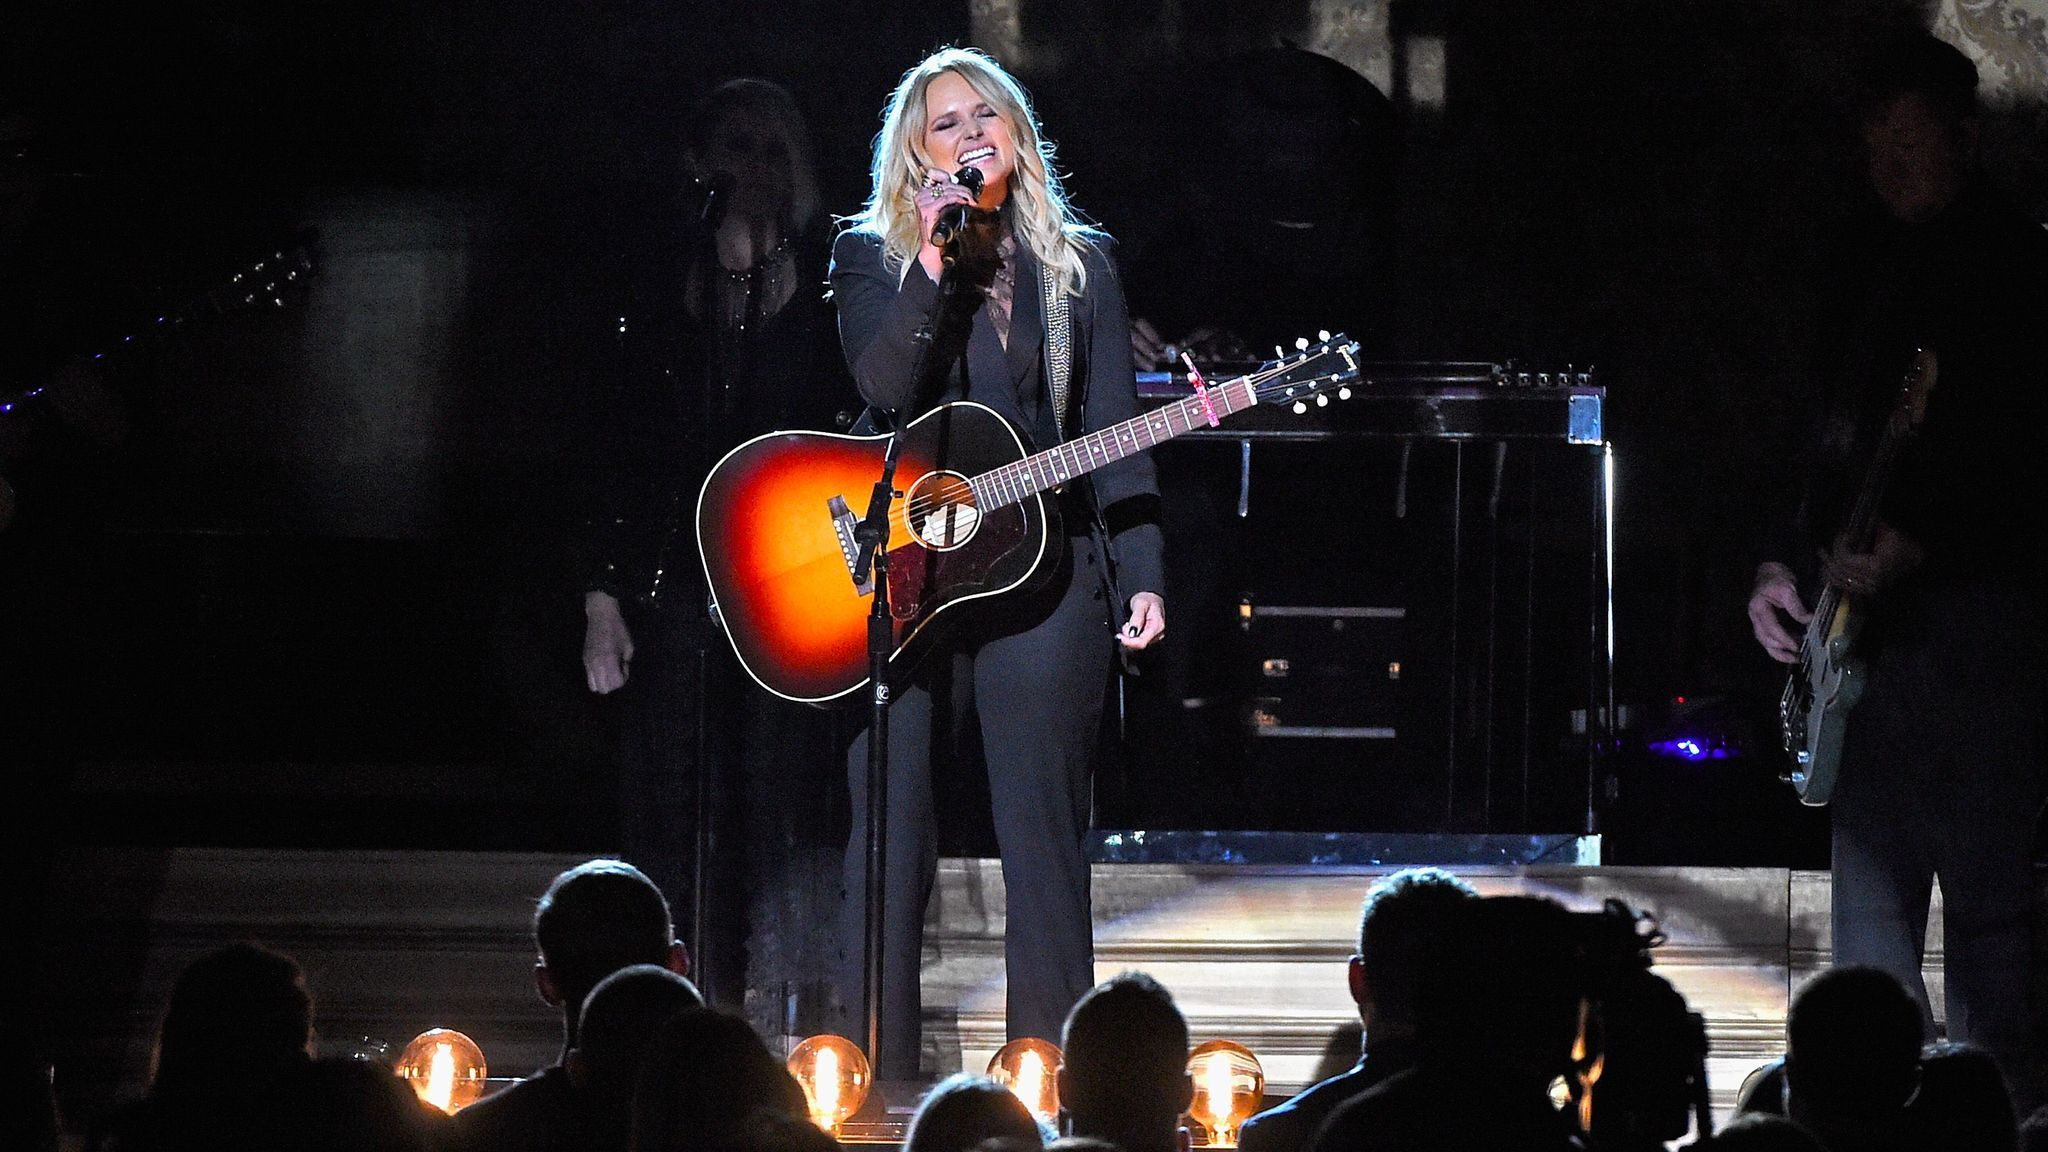 The biggest surprises and disappointments in the 51st CMA Awards nominees